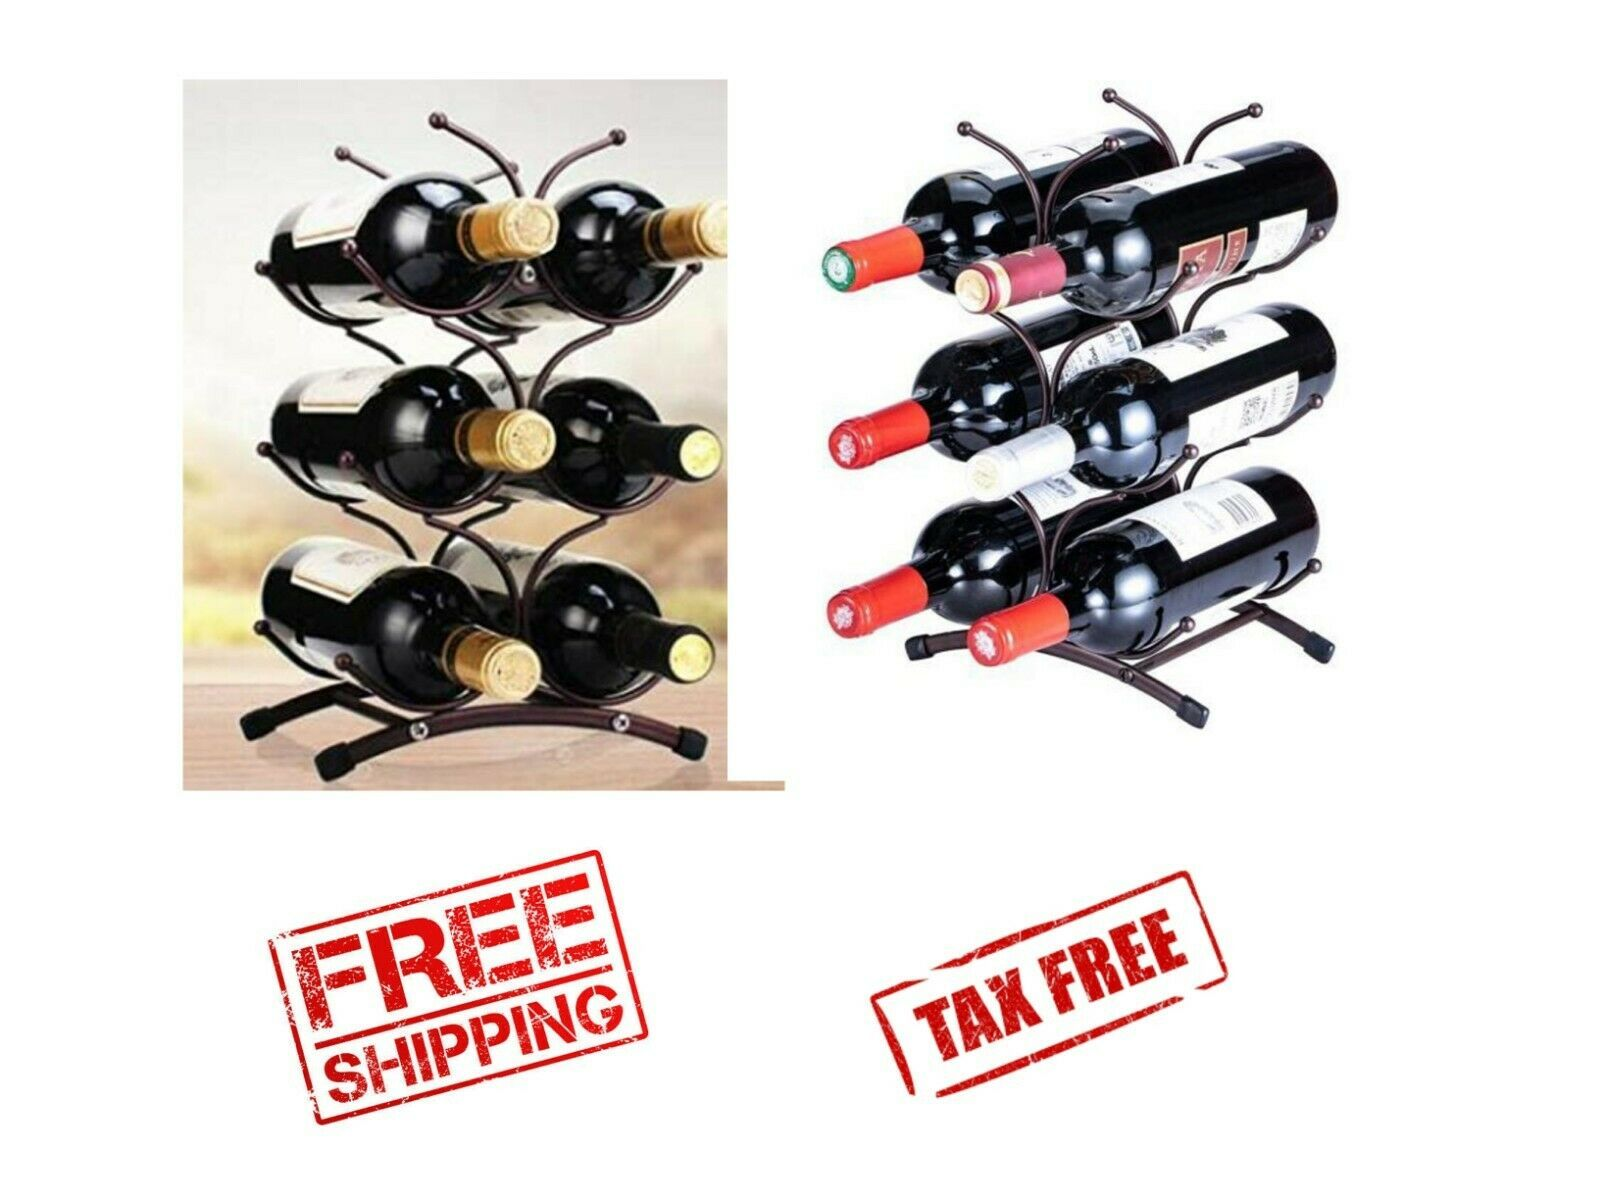 Space Saving Vintage 3 Tier Metal Countertop Wine Rack Holds 6